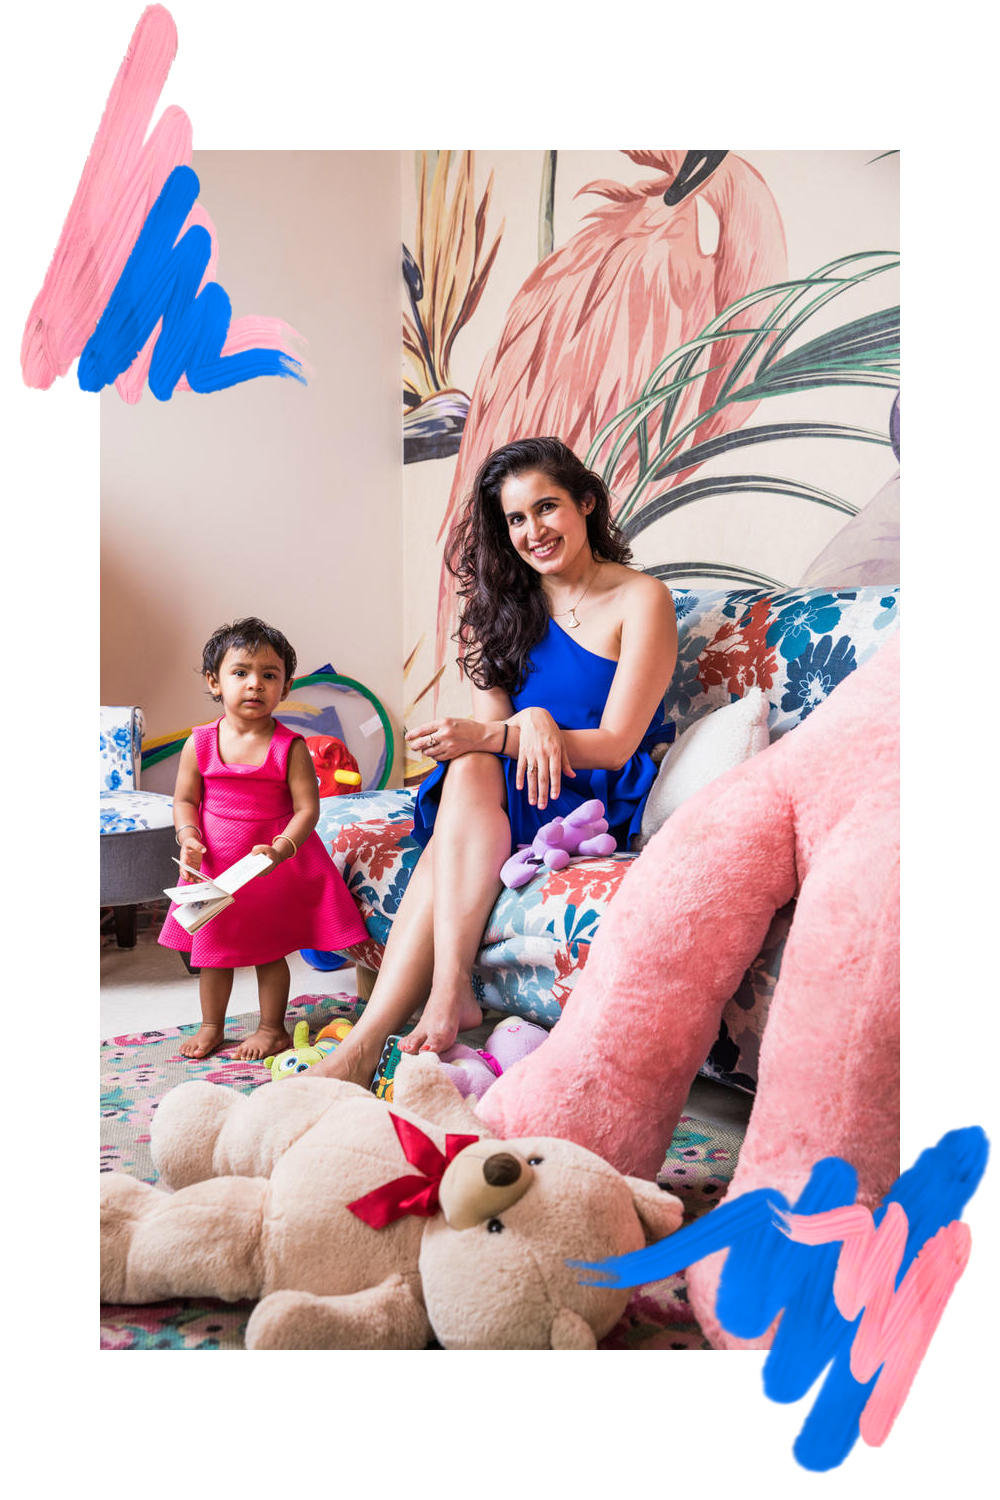 DERMATOLOGIST - Born & Brought up in New York, Columbia bred Dr. Kiran Lohia moved to Delhi a few years ago and within a short span of time through her work managed to attract a cult following that ranges from loyal clients to an avid social media community. She juggles solo motherhood and her very own dermatology practice at Isya Derm Clinic with what appears as seamless ease, when actually it is all tedious management. Her youthful glowy skin, cheerful yet calm persona and glam life might seem charming, but it takes a load of work. We adore how she has taken her career to the next level without compromising on taking care of her 2 year old daughter Raina. In this exclusive interview with BeBadass we chat with the Badass Doctor to understand how she manages her skin, her daughter and her work so successfully.